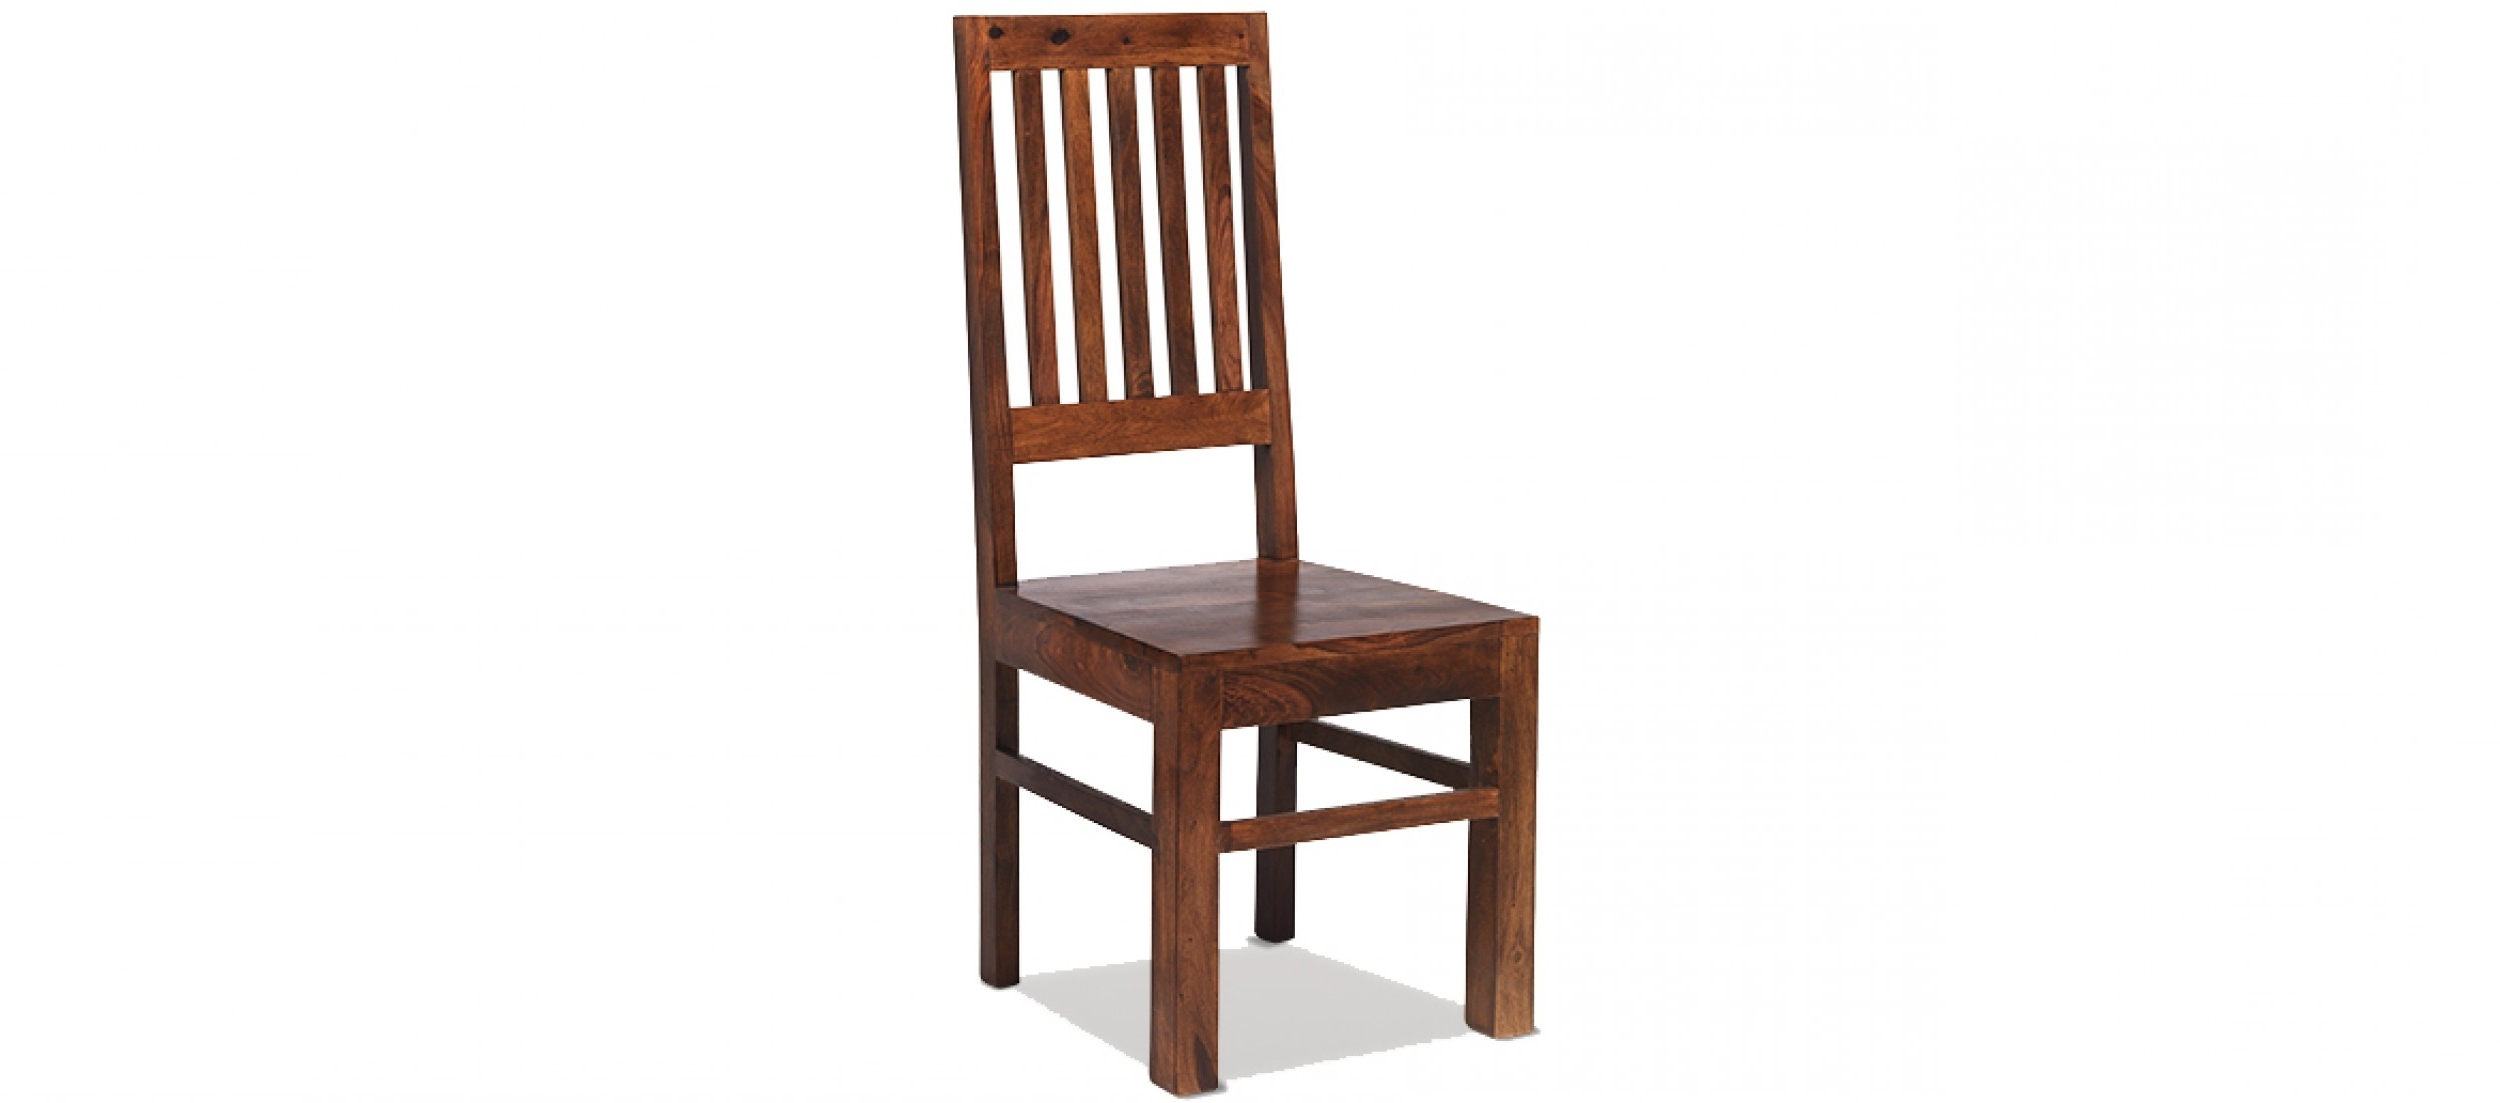 Sheesham Dining Chairs Regarding Most Up To Date Jali Sheesham High Back Slat Dining Chairs – Pair (View 24 of 25)